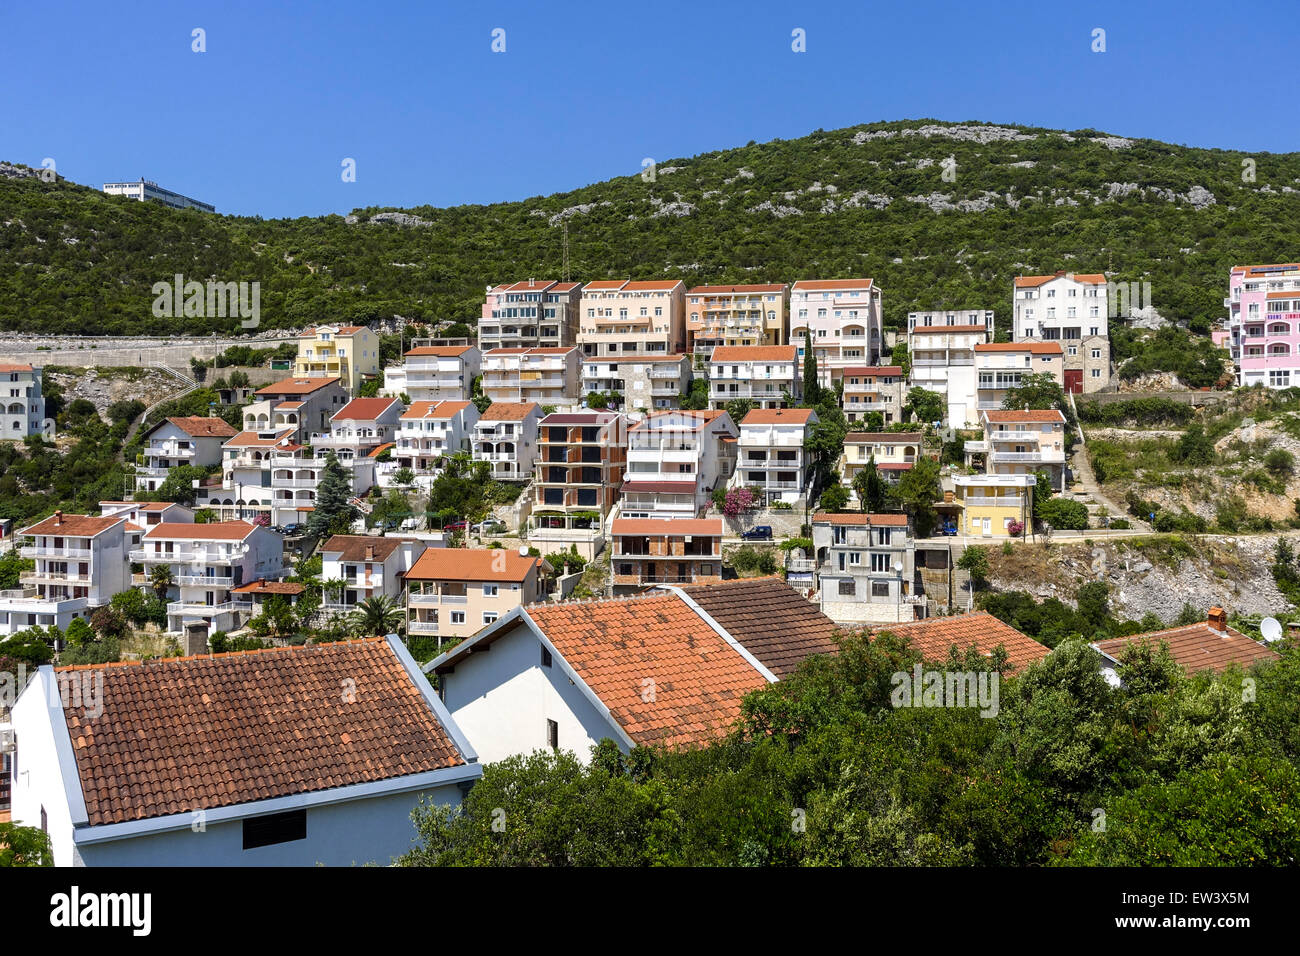 Only sea access of the country, Neum, Bosnia-Herzegovina - Stock Image